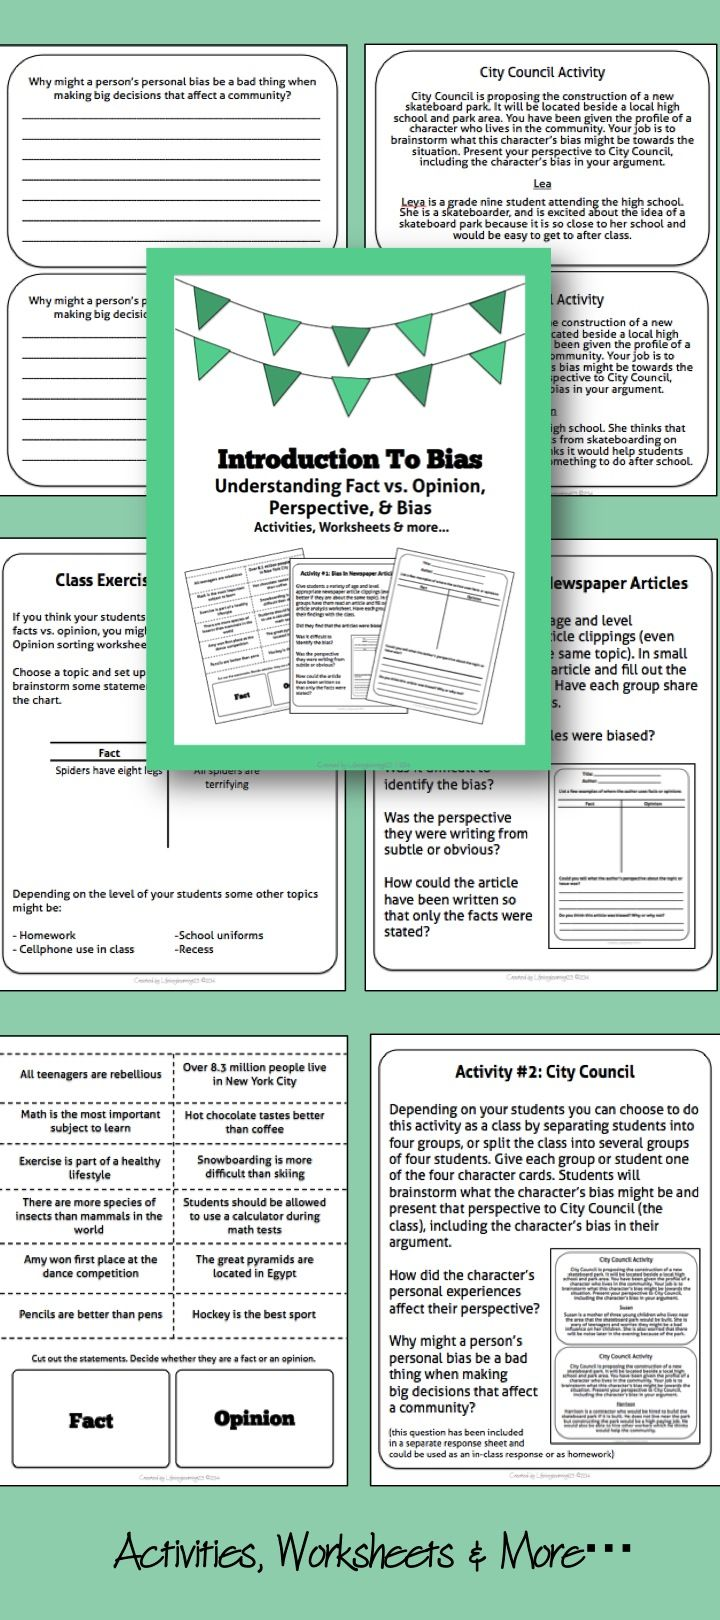 worksheet Fact Opinion Bias Worksheet introduction to bias understanding fact vs opinion perspective bias